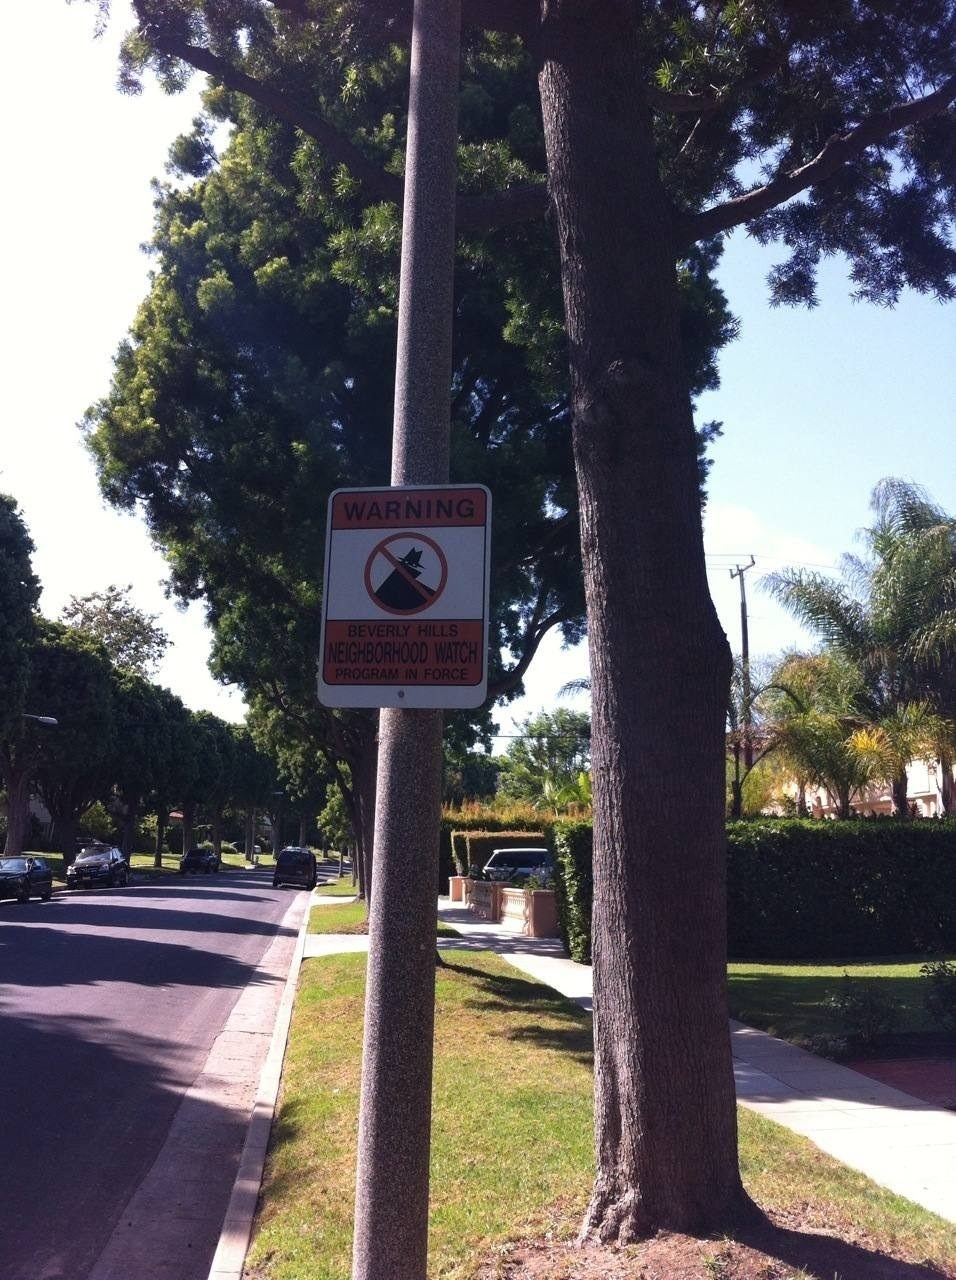 Even the Beverly Hills Neighbourhood Watch program looks like something from a movie...